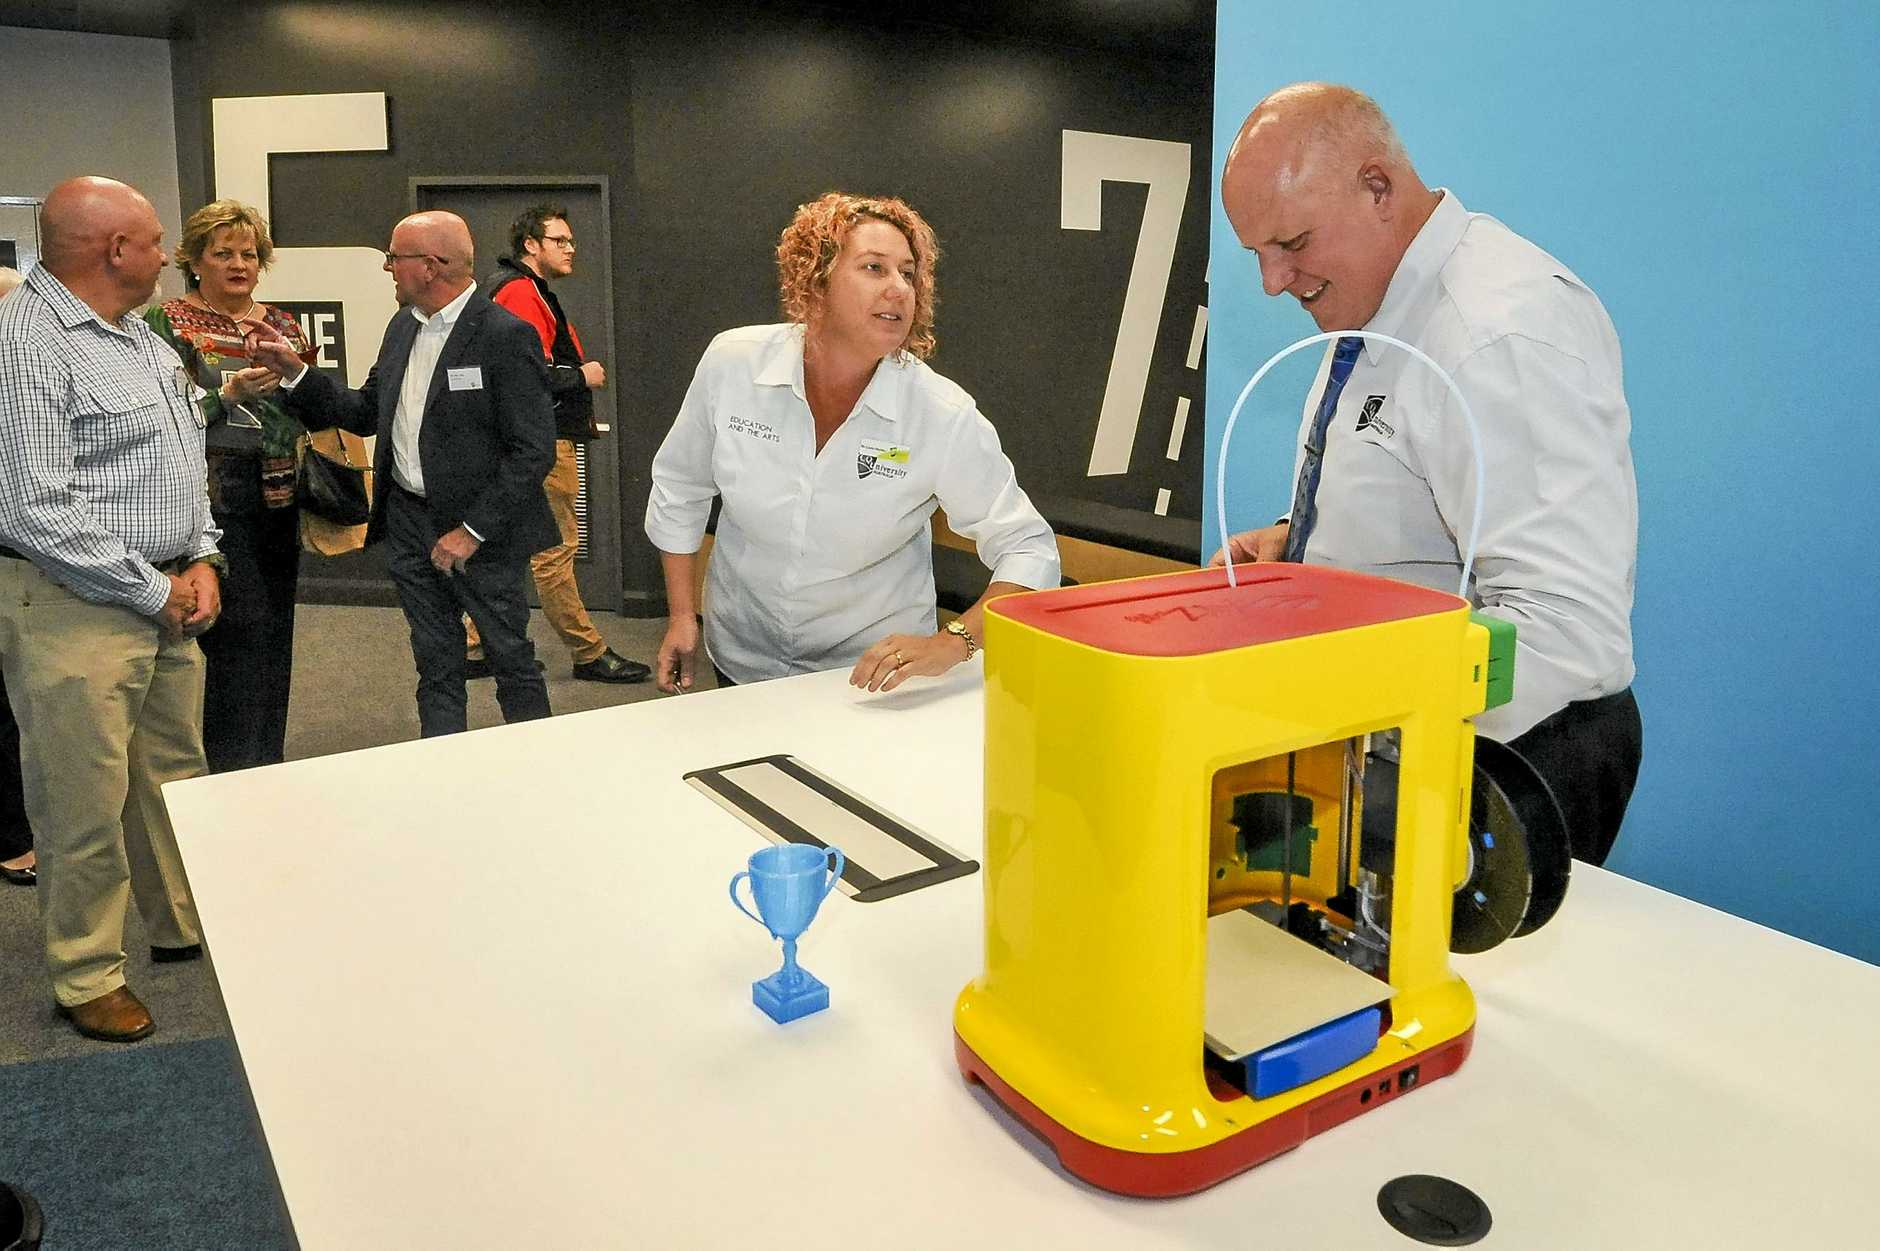 INNOVATIVE: Dr Linda Pfeiffer and CQUniversity vice-chancellor, Professor Scott Bowman, check out the 3D printer at the opening of the Australia Pacific LNG STEM Central at Gladstone Marina campus last Thursday.